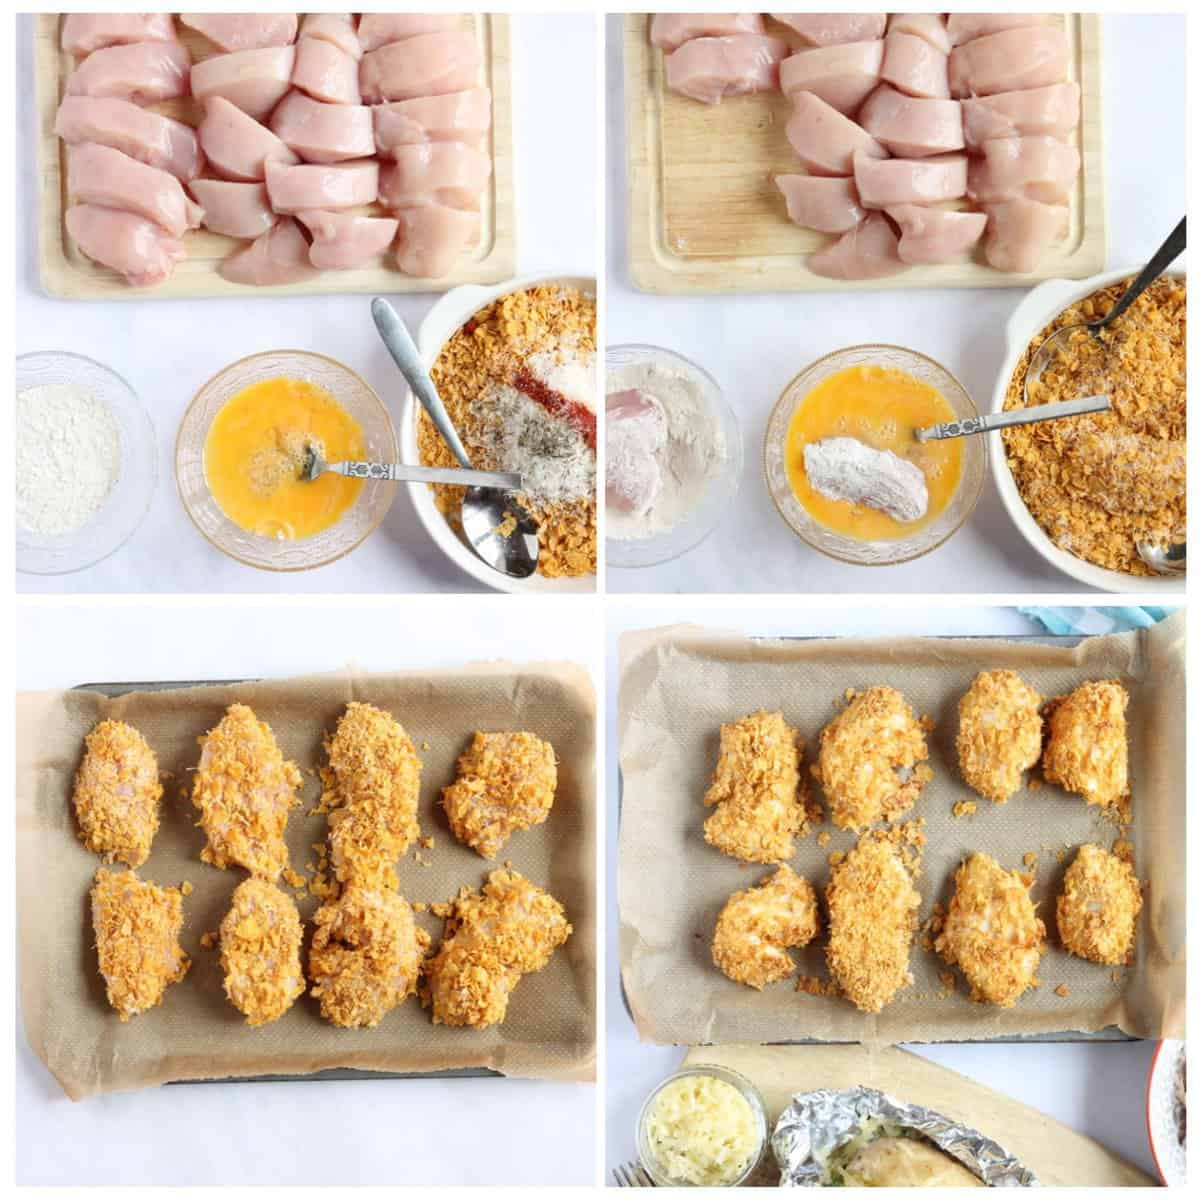 Step by step photo instructions for making cornflake chicken nuggets